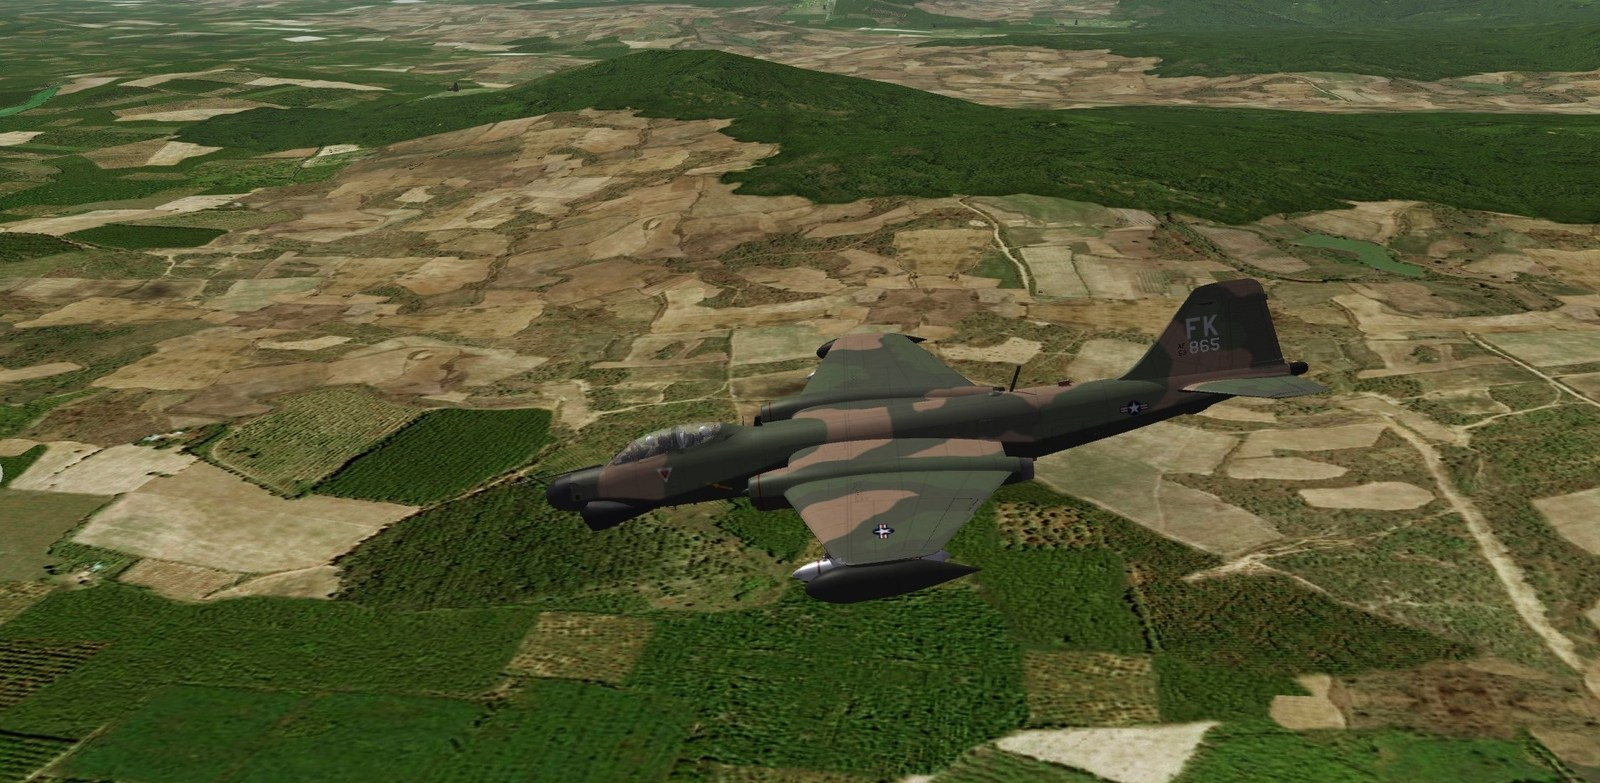 One day over Vietnam